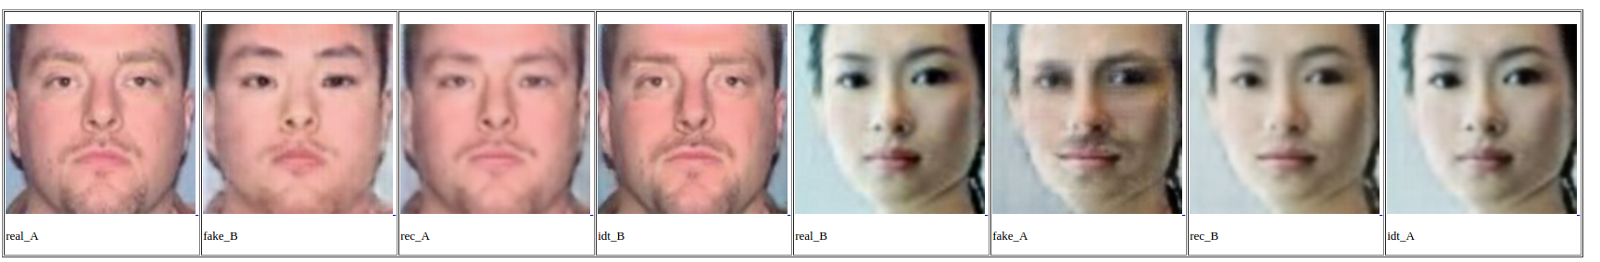 Gender and Race Change on Your Selfie with Neural Nets - By